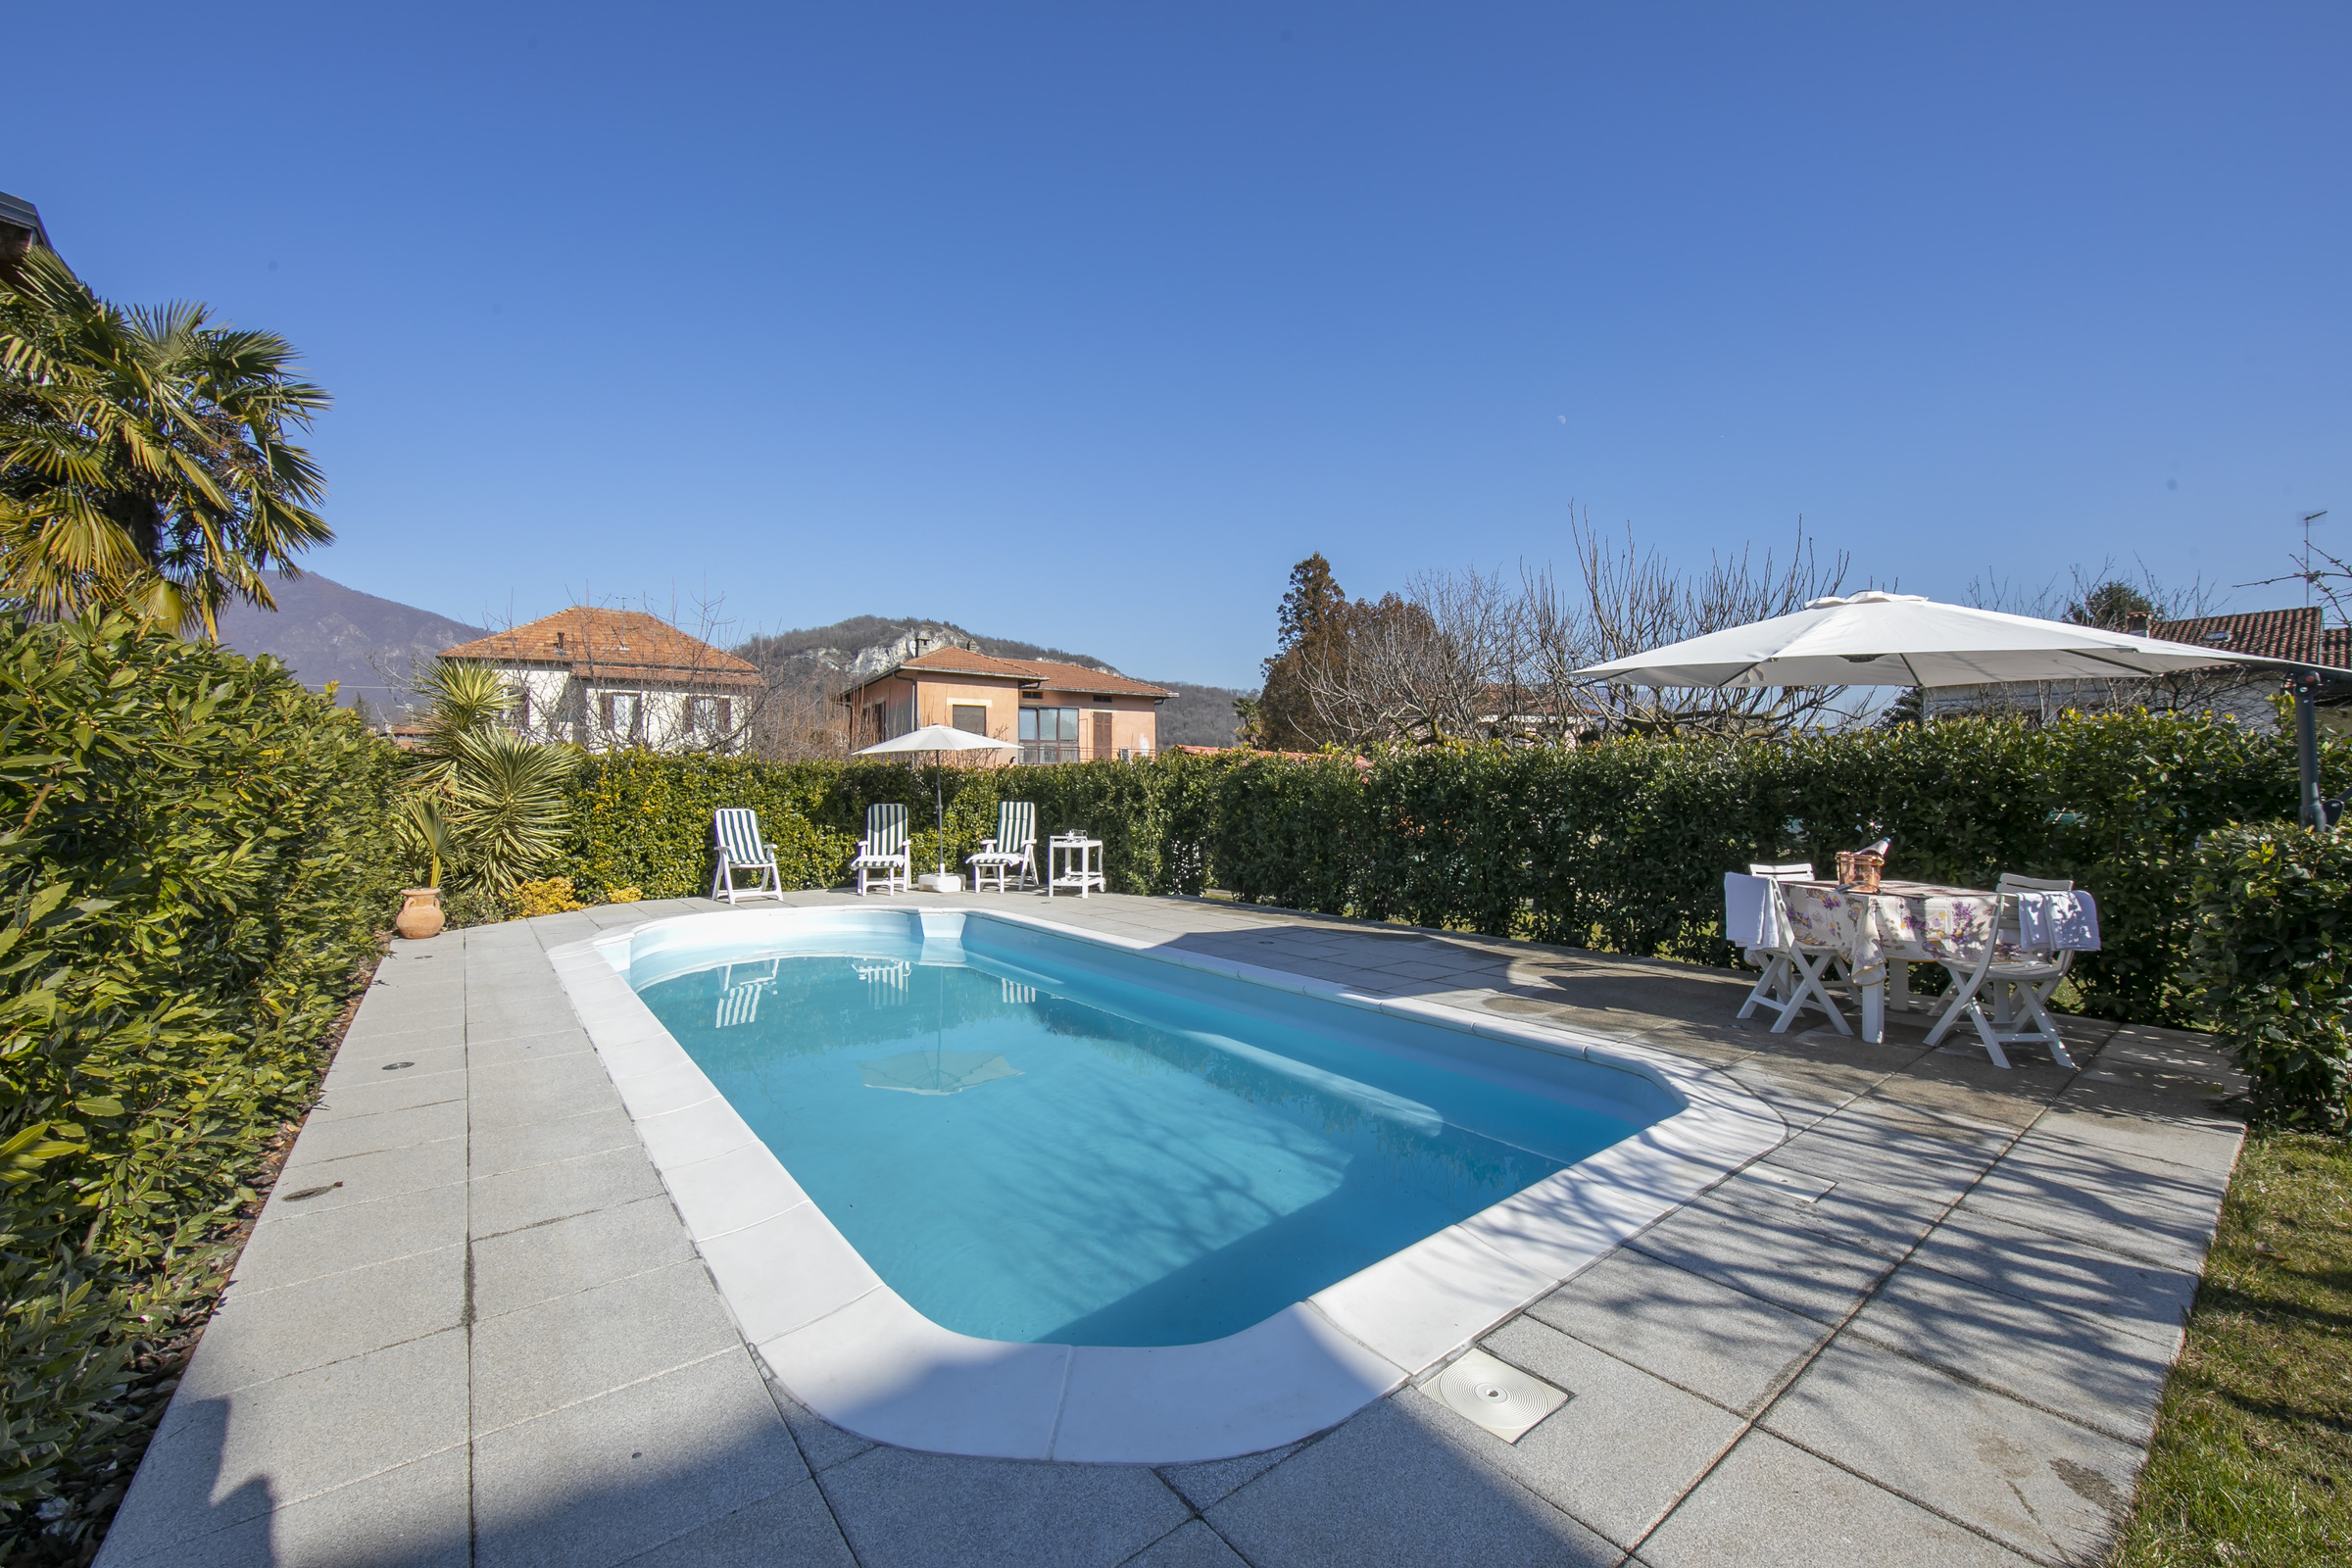 Ferienwohnung Mit Pool Am Bodensee Appartement Casa Amabile With Pool En Lombardia